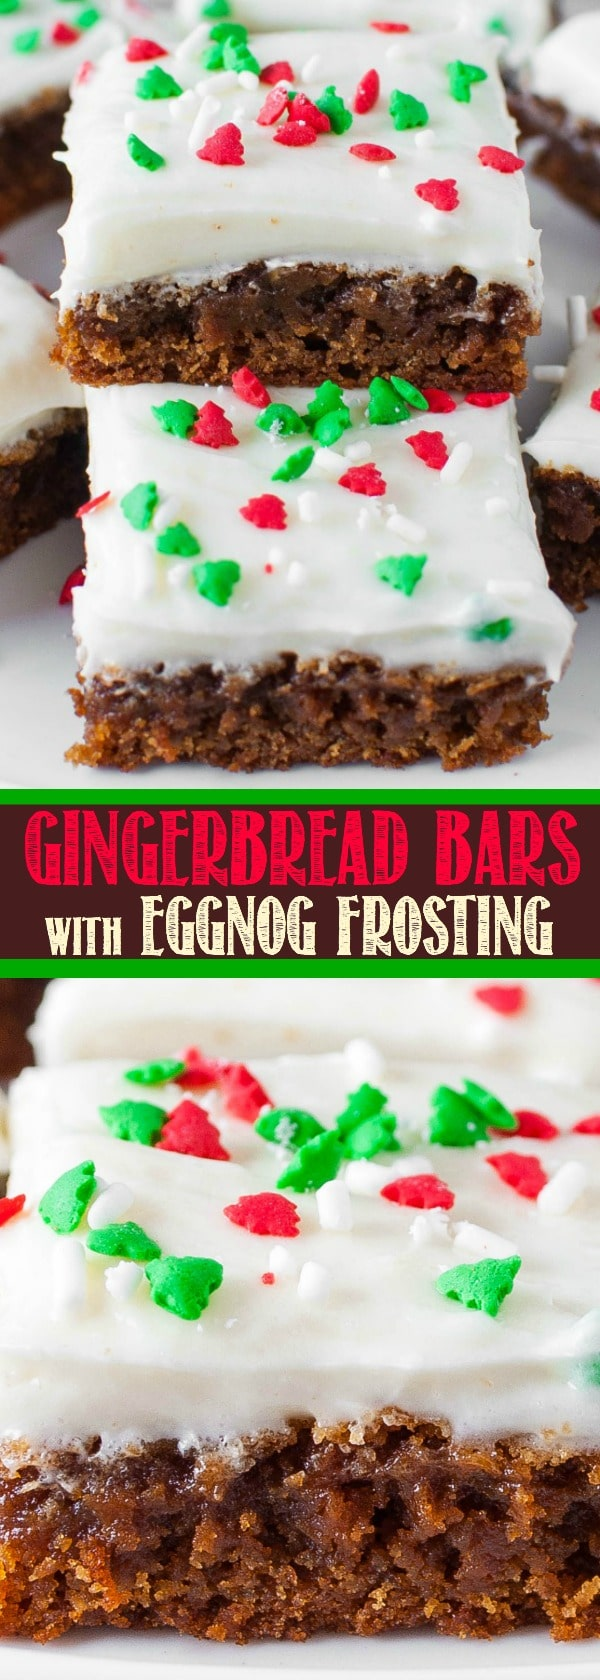 Soft and Chewy Gingerbread Bars with Eggnog Cream Cheese Frosting! And easy Christmas dessert recipe everyone loves!